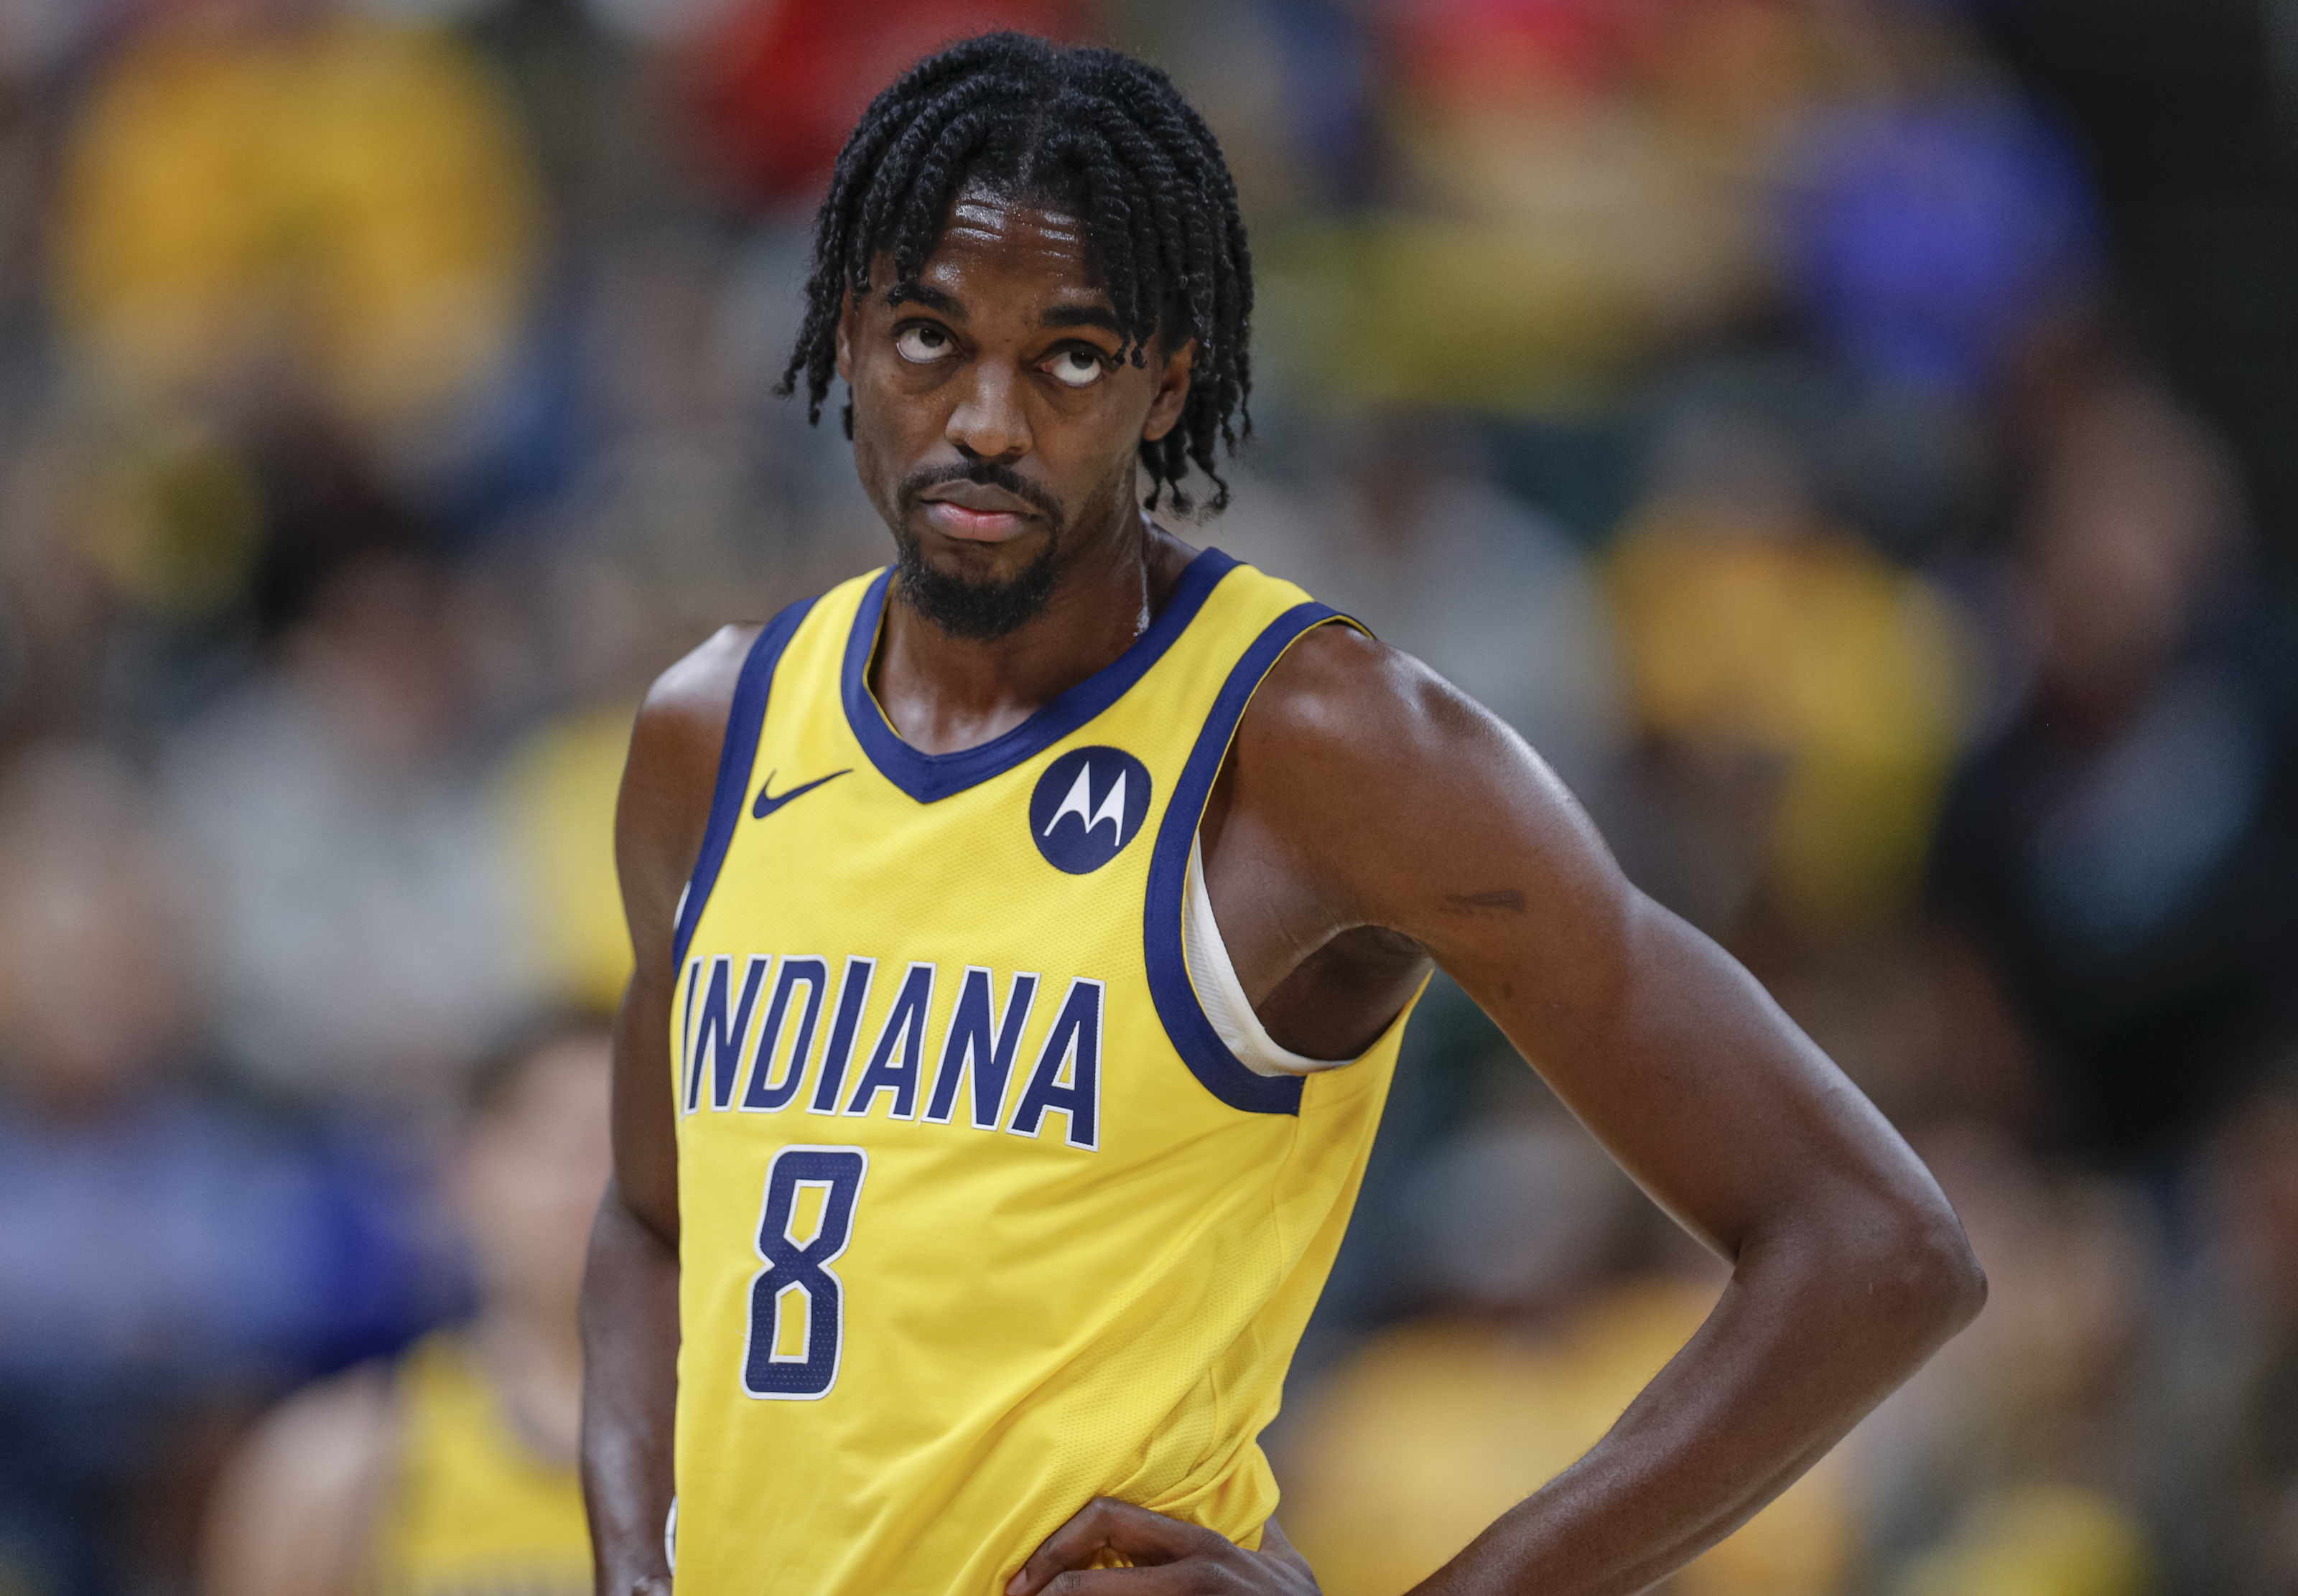 Justin Holidays' impact on the Indiana Pacers this season